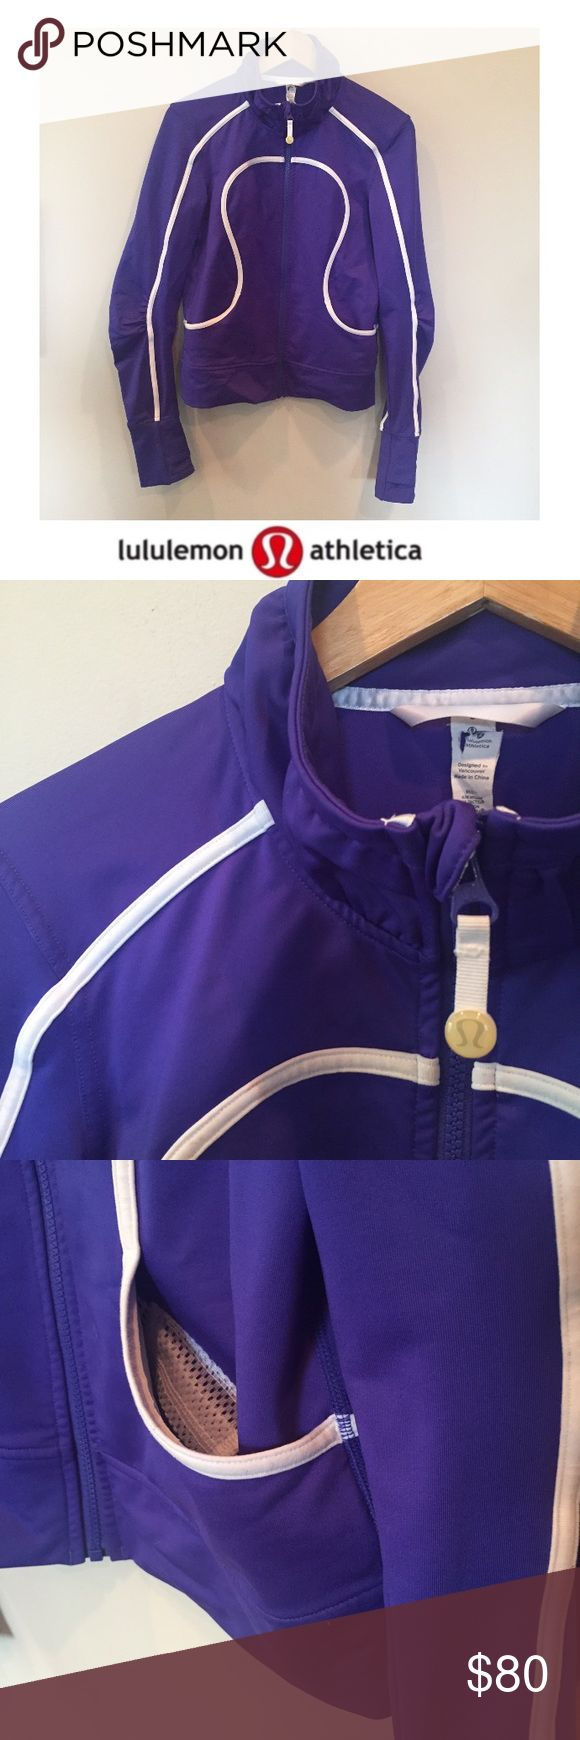 Lululemon Purple & White Zip Up Warm Up Jacket Lululemon Purple & White Zip Up Athletic Jacket. Thumb holes. 18.75 inch bust. 24 inches long. Gently worn. Great condition. No flaws or stains. Feel free to make an offer or bundle & save. lululemon athletica Jackets & Coats